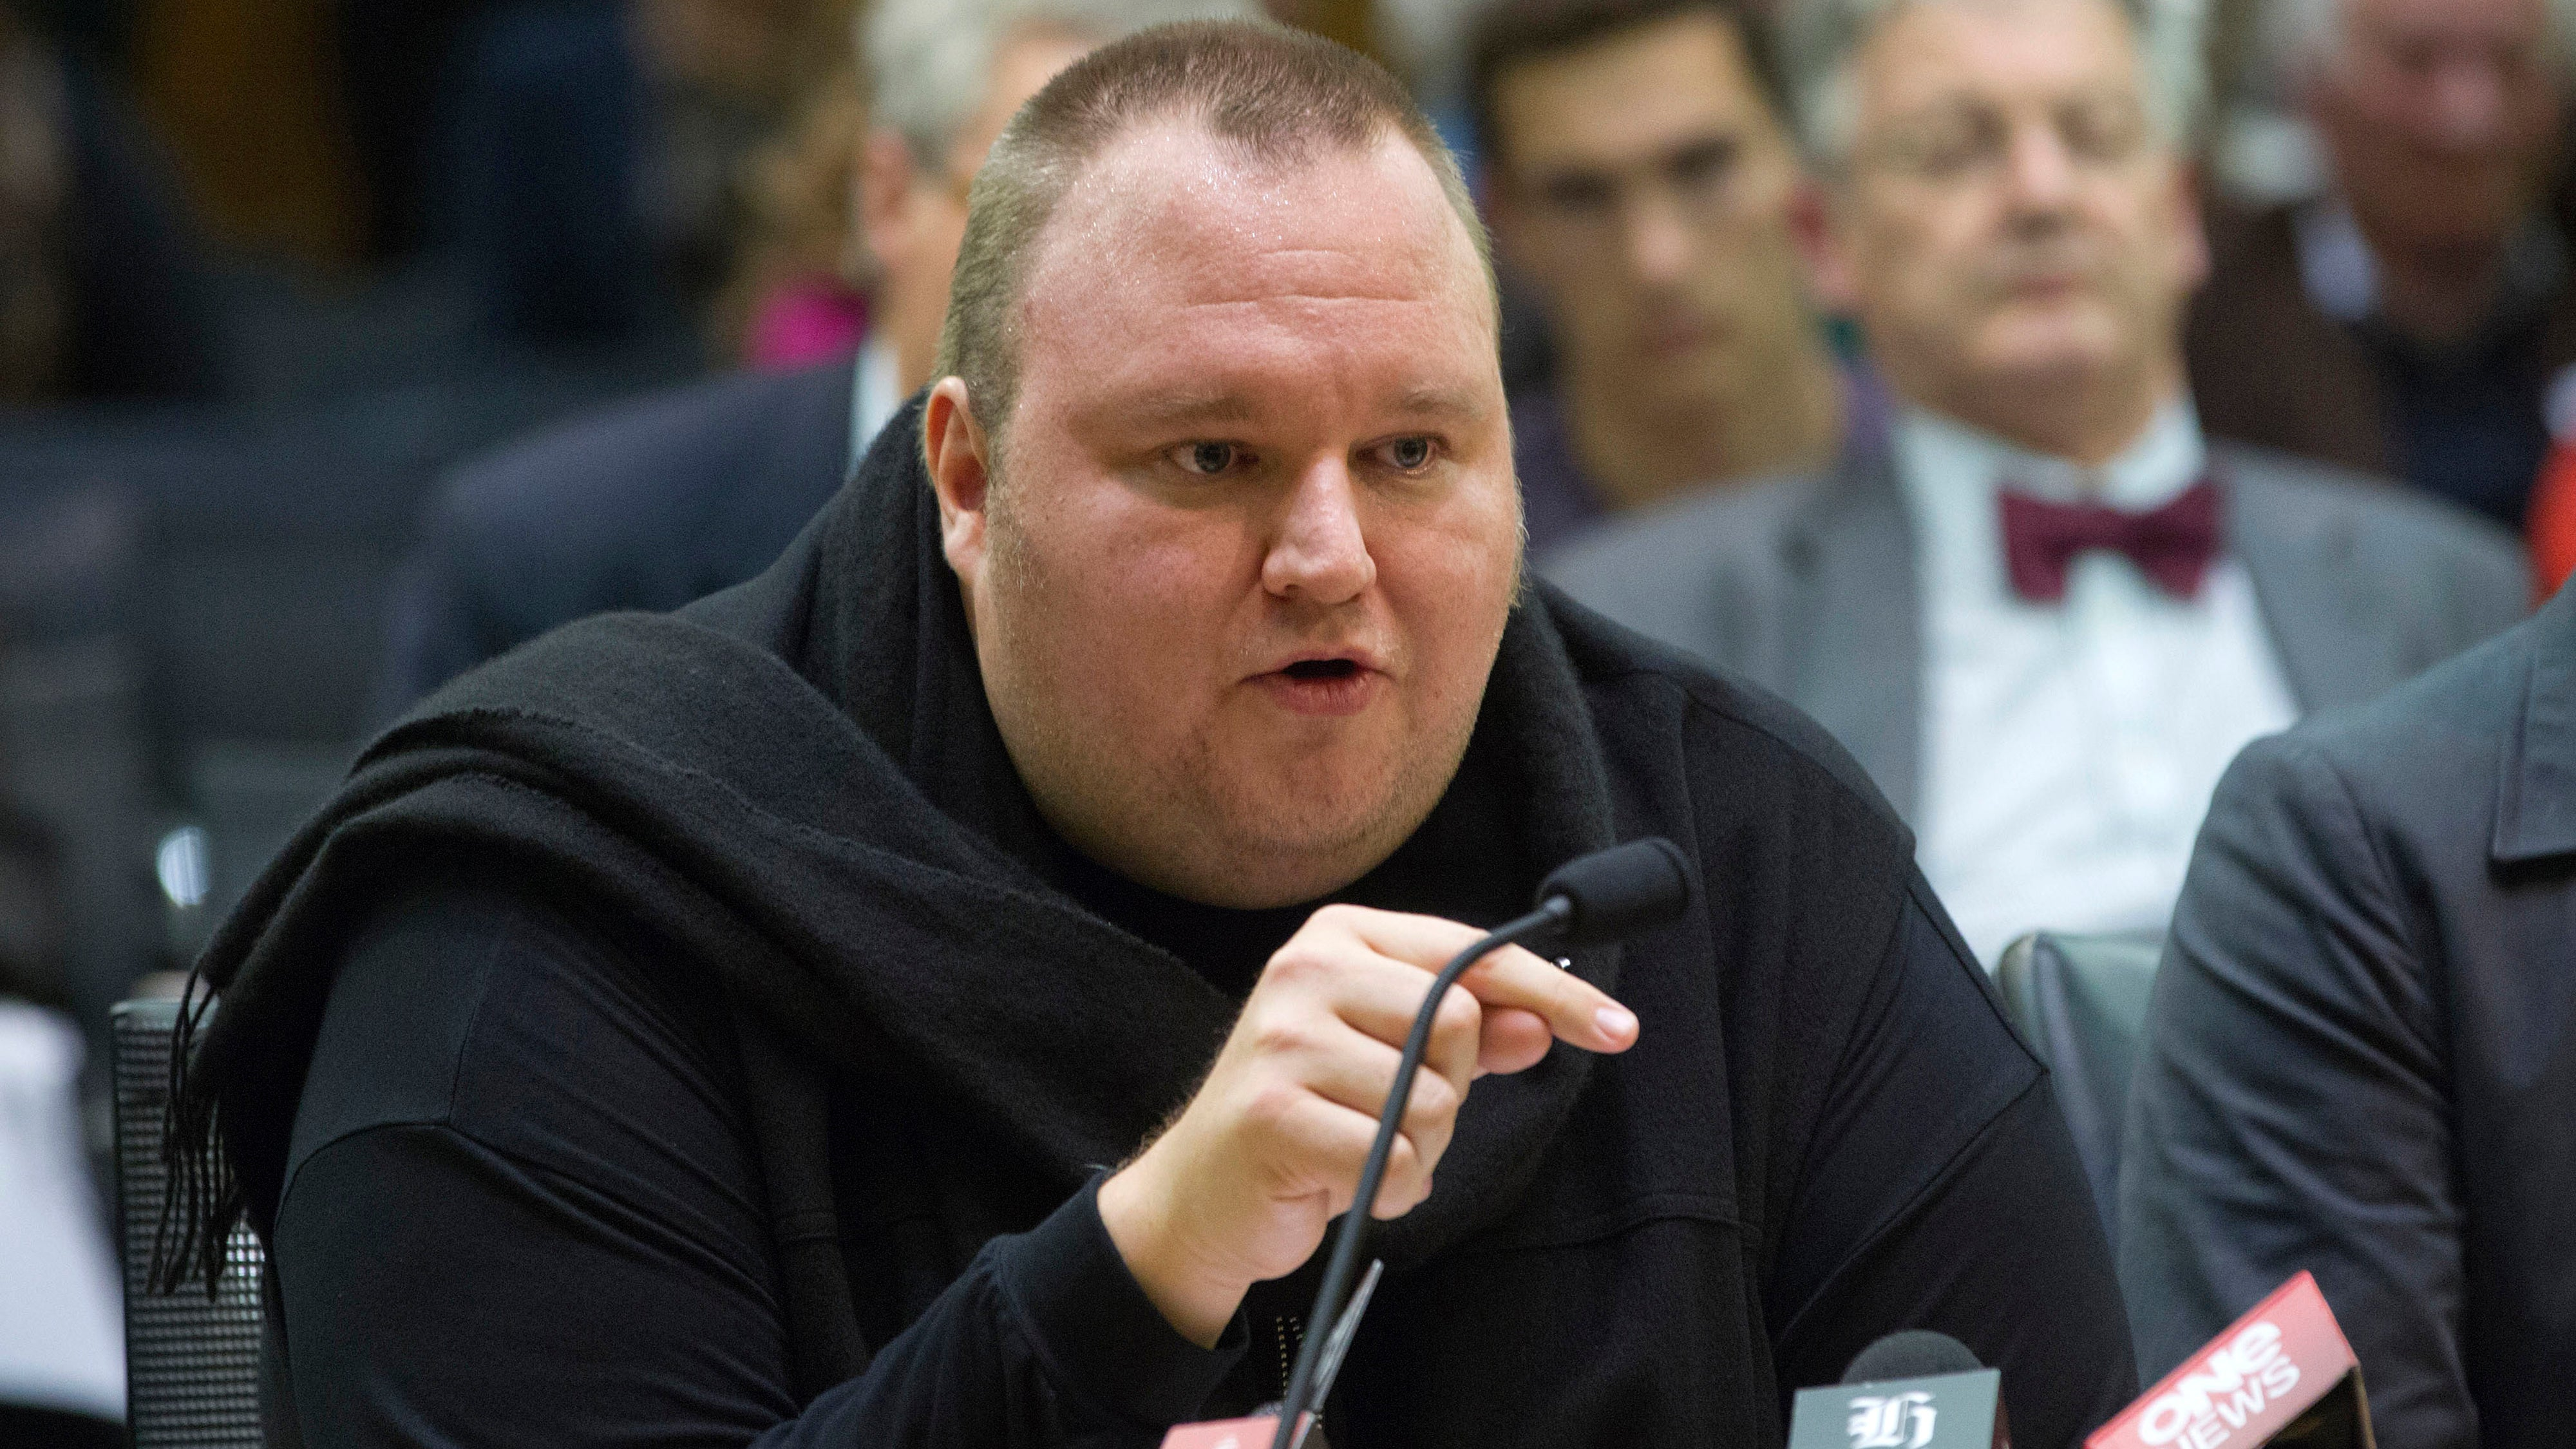 US Supreme Court Declines To Hear Kim Dotcom's Civil Asset Forfeiture Appeal